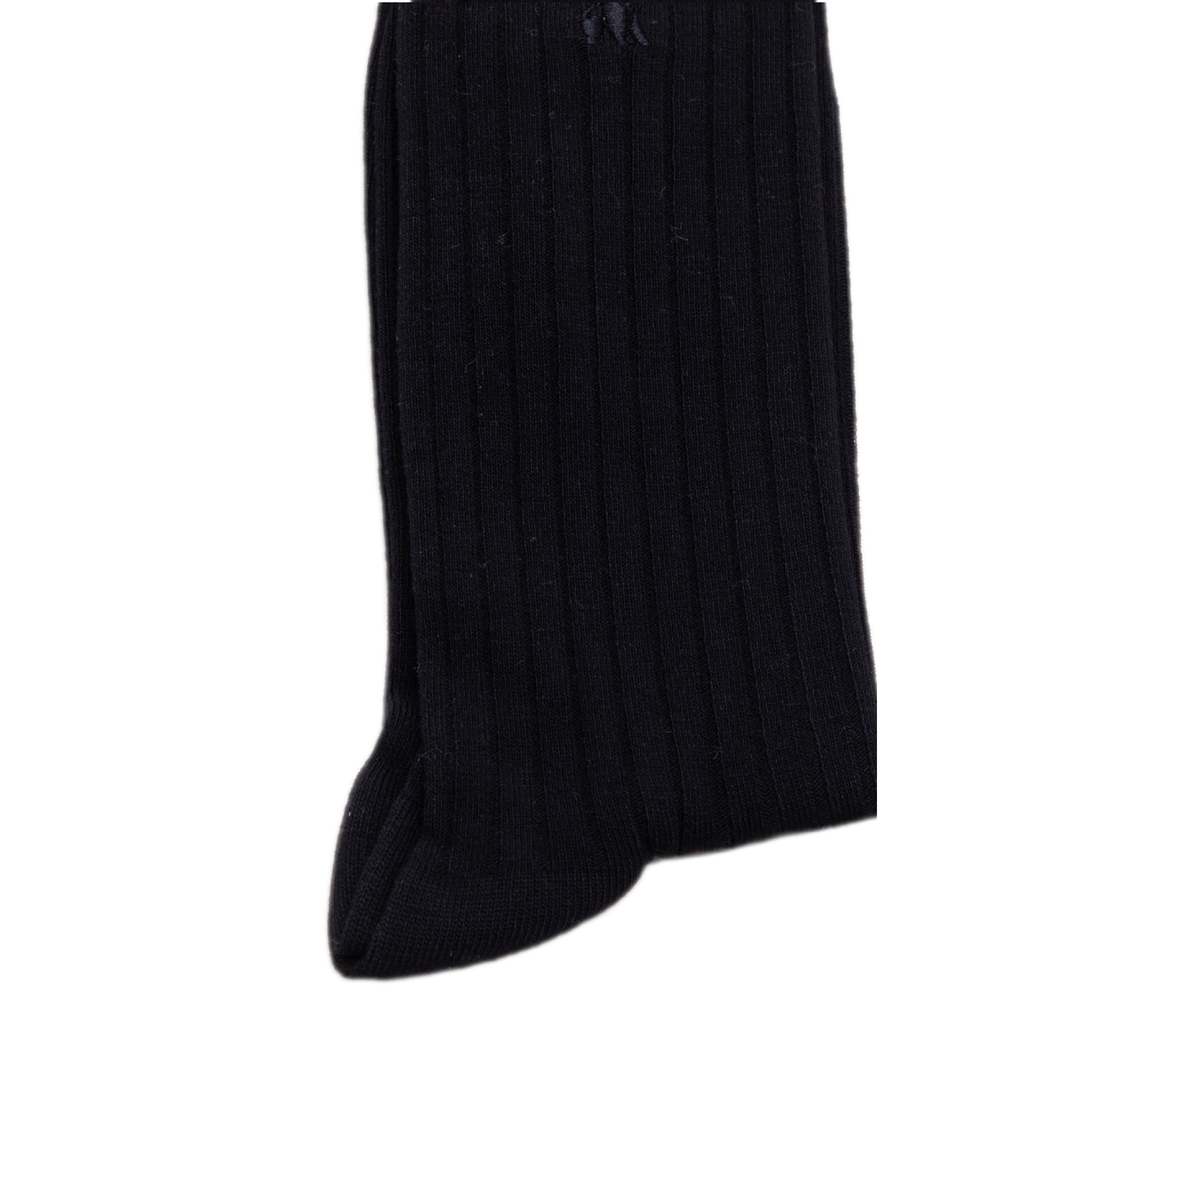 Jet Black Bamboo Socks